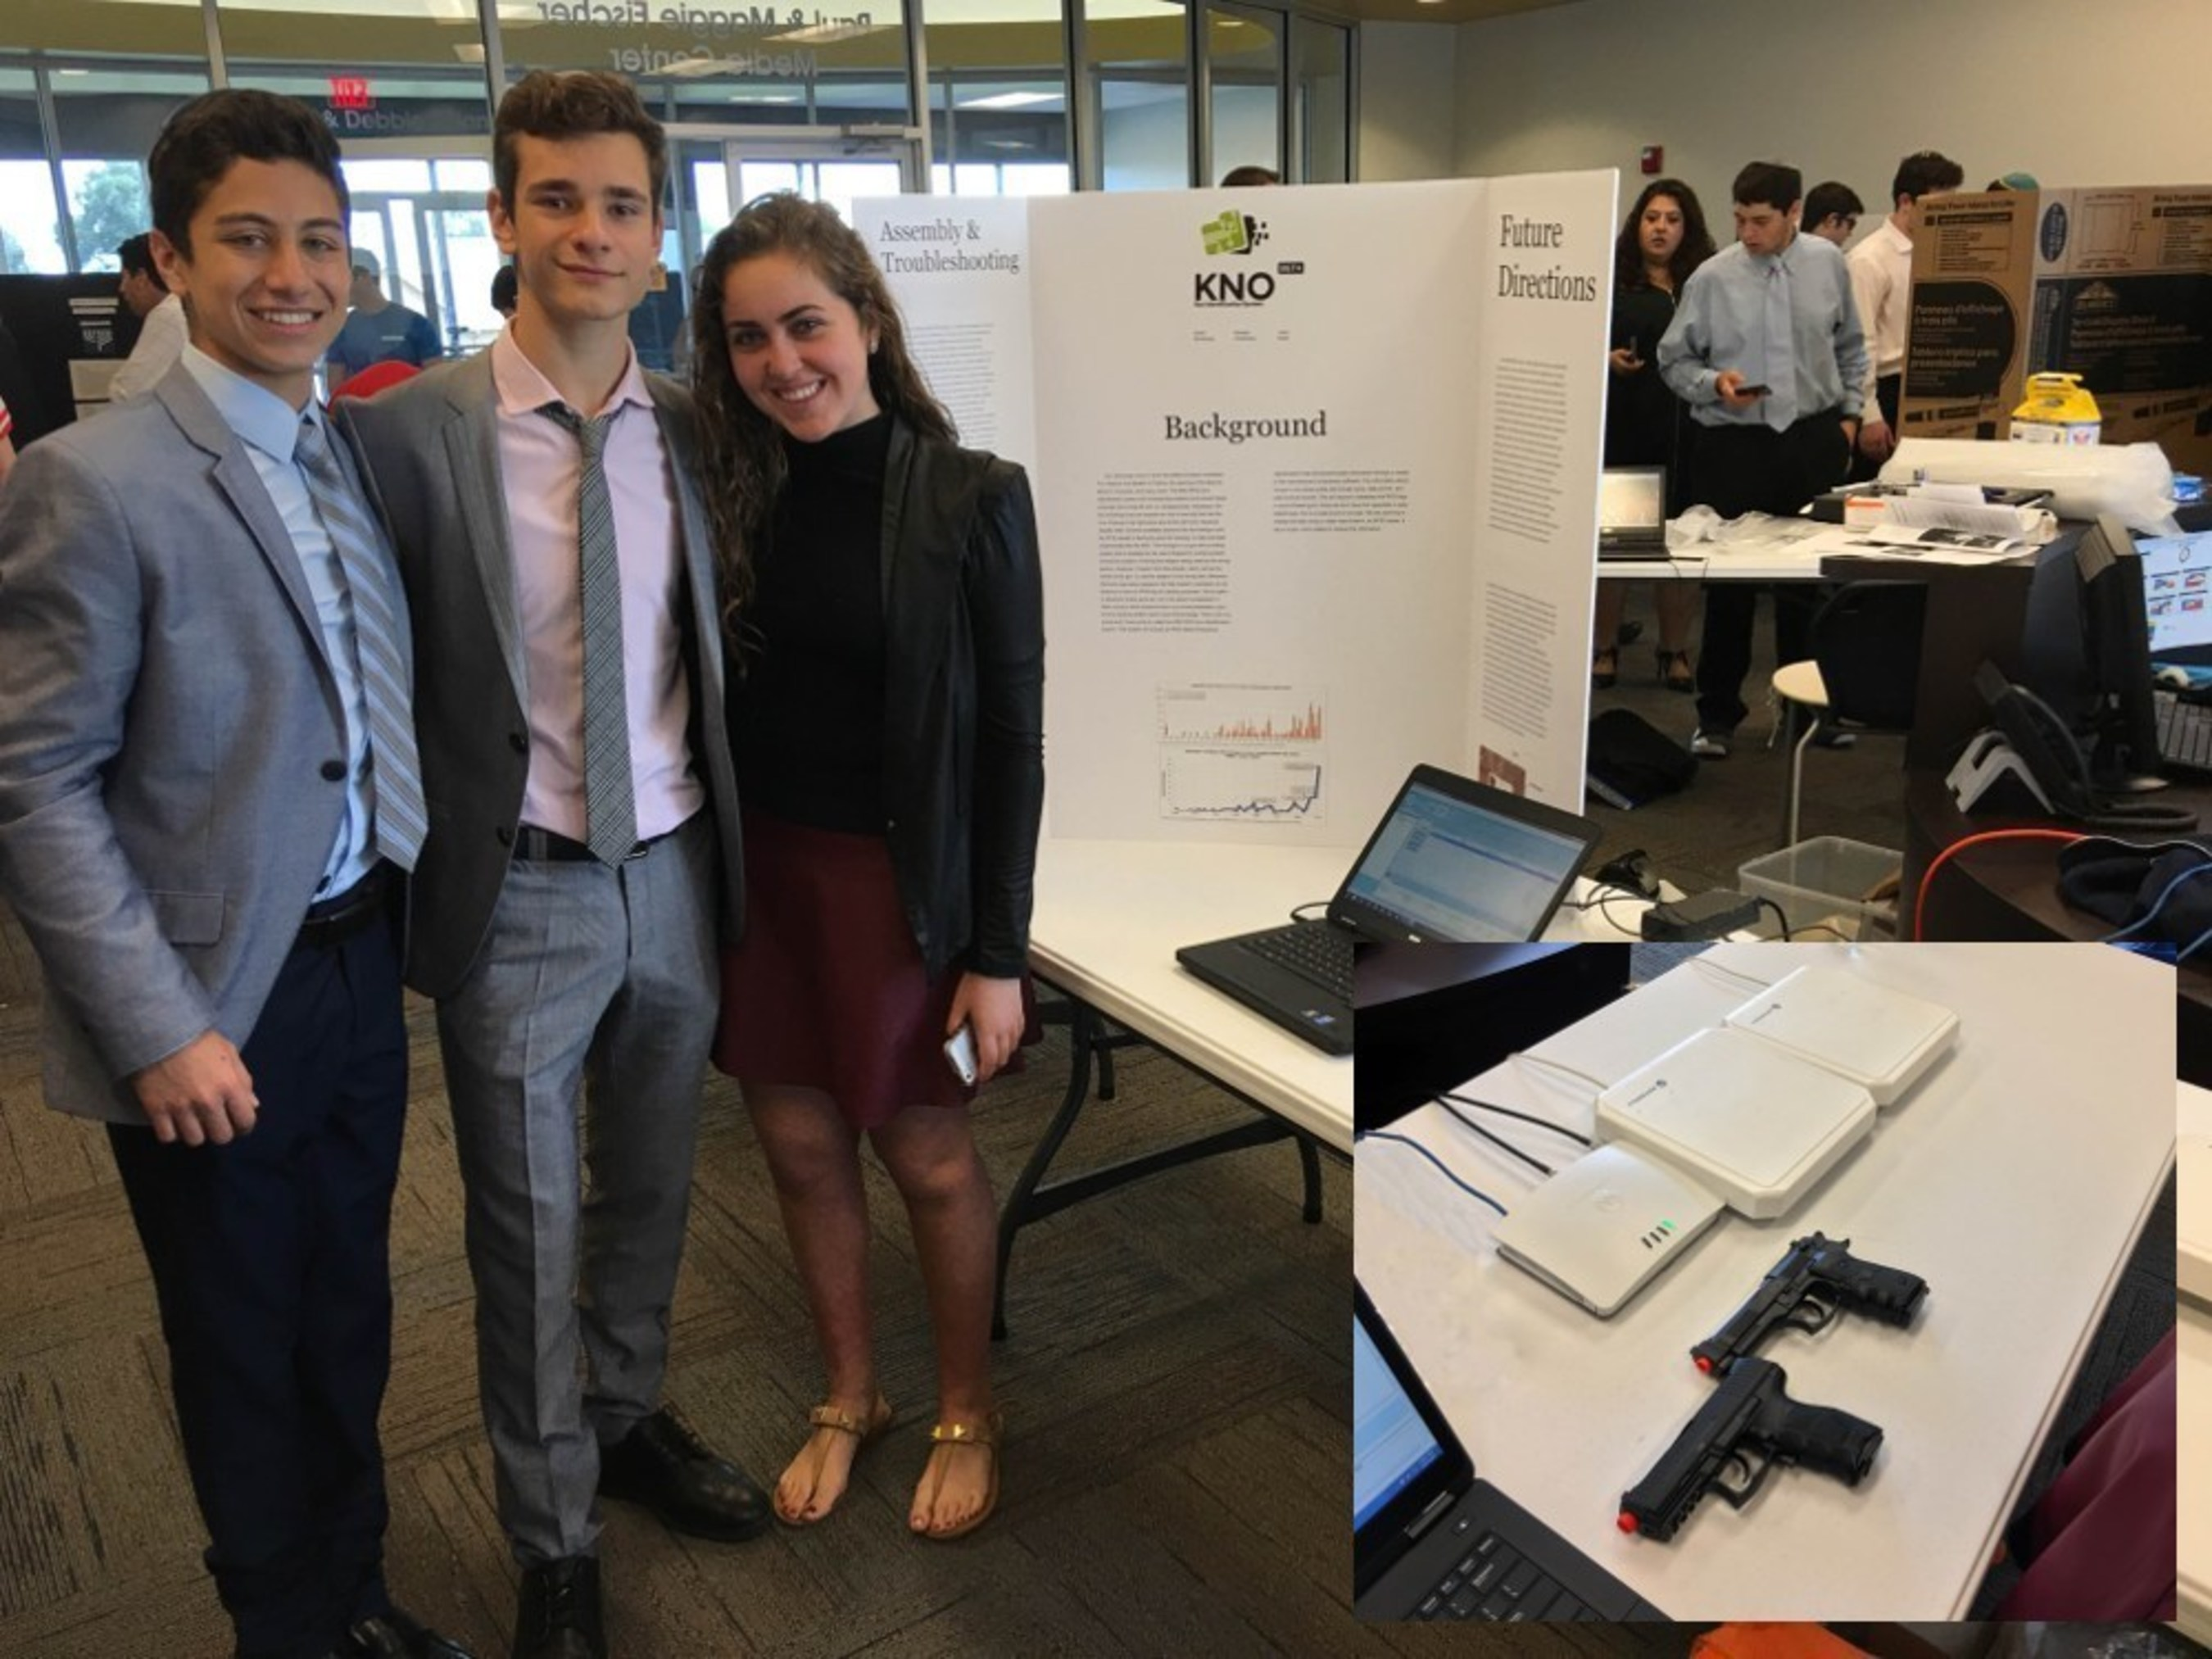 With the help of a Long Island company, three Florida high school freshmen are using technology and ingenuity to try to end school shootings.